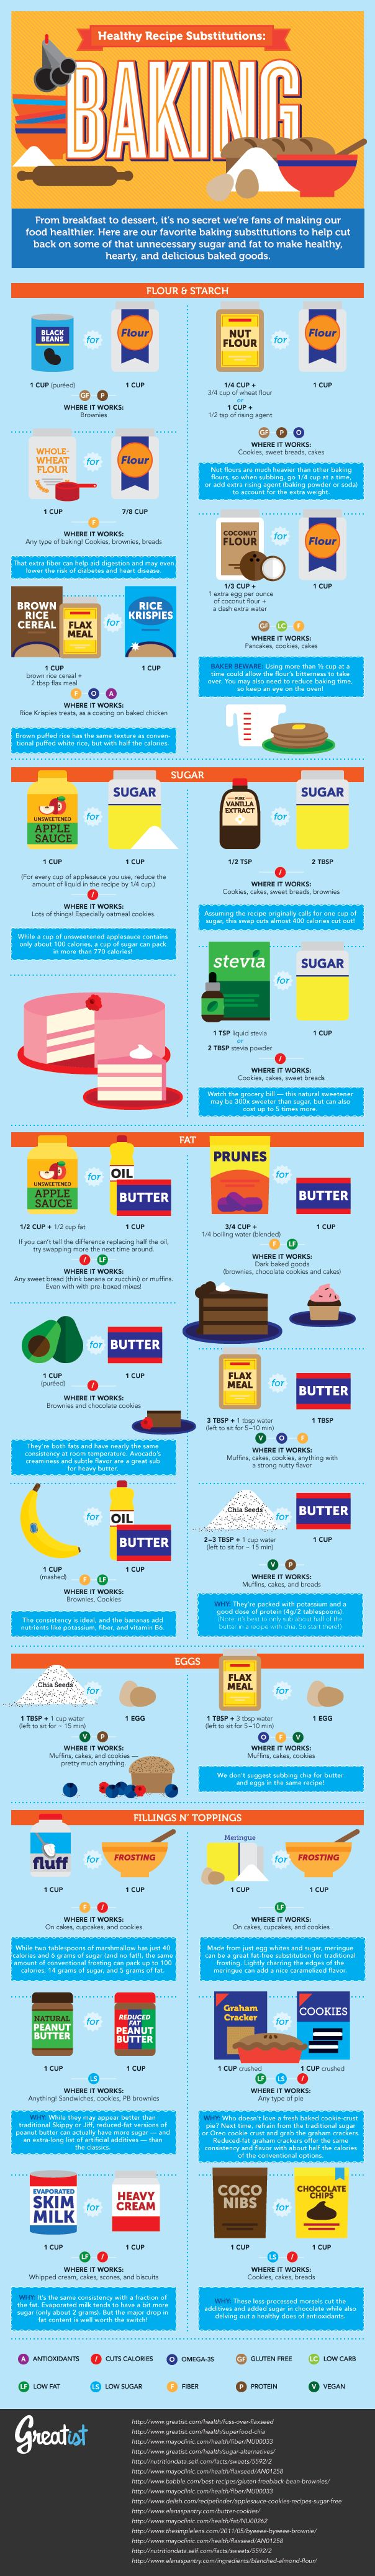 Making your favorite recipes healthier is super simple with these healthy substitutions to use when baking.